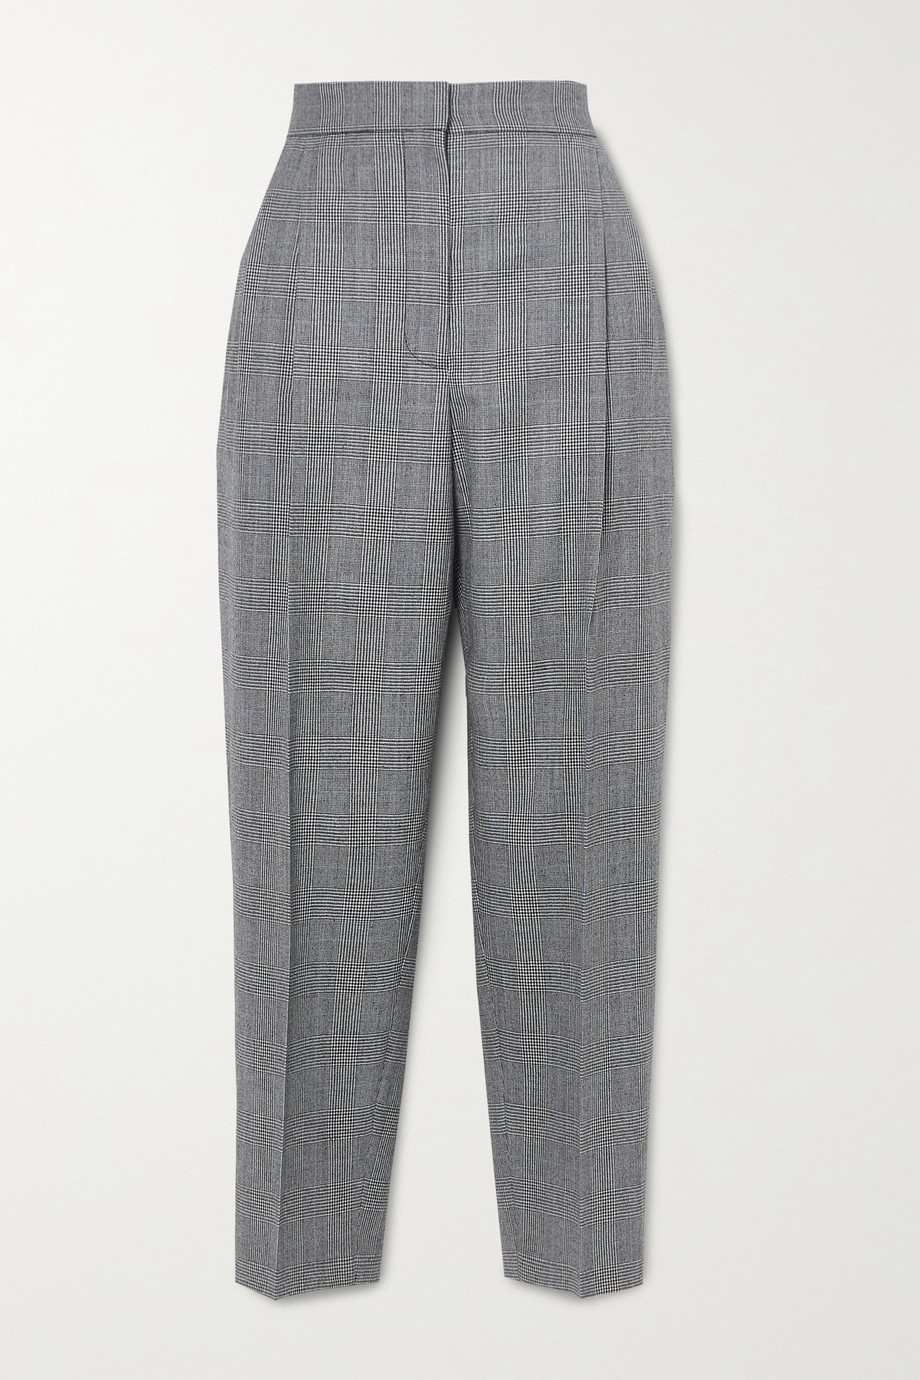 Alexander McQueen Prince of Wales checked wool and cashmere-blend tapered pants